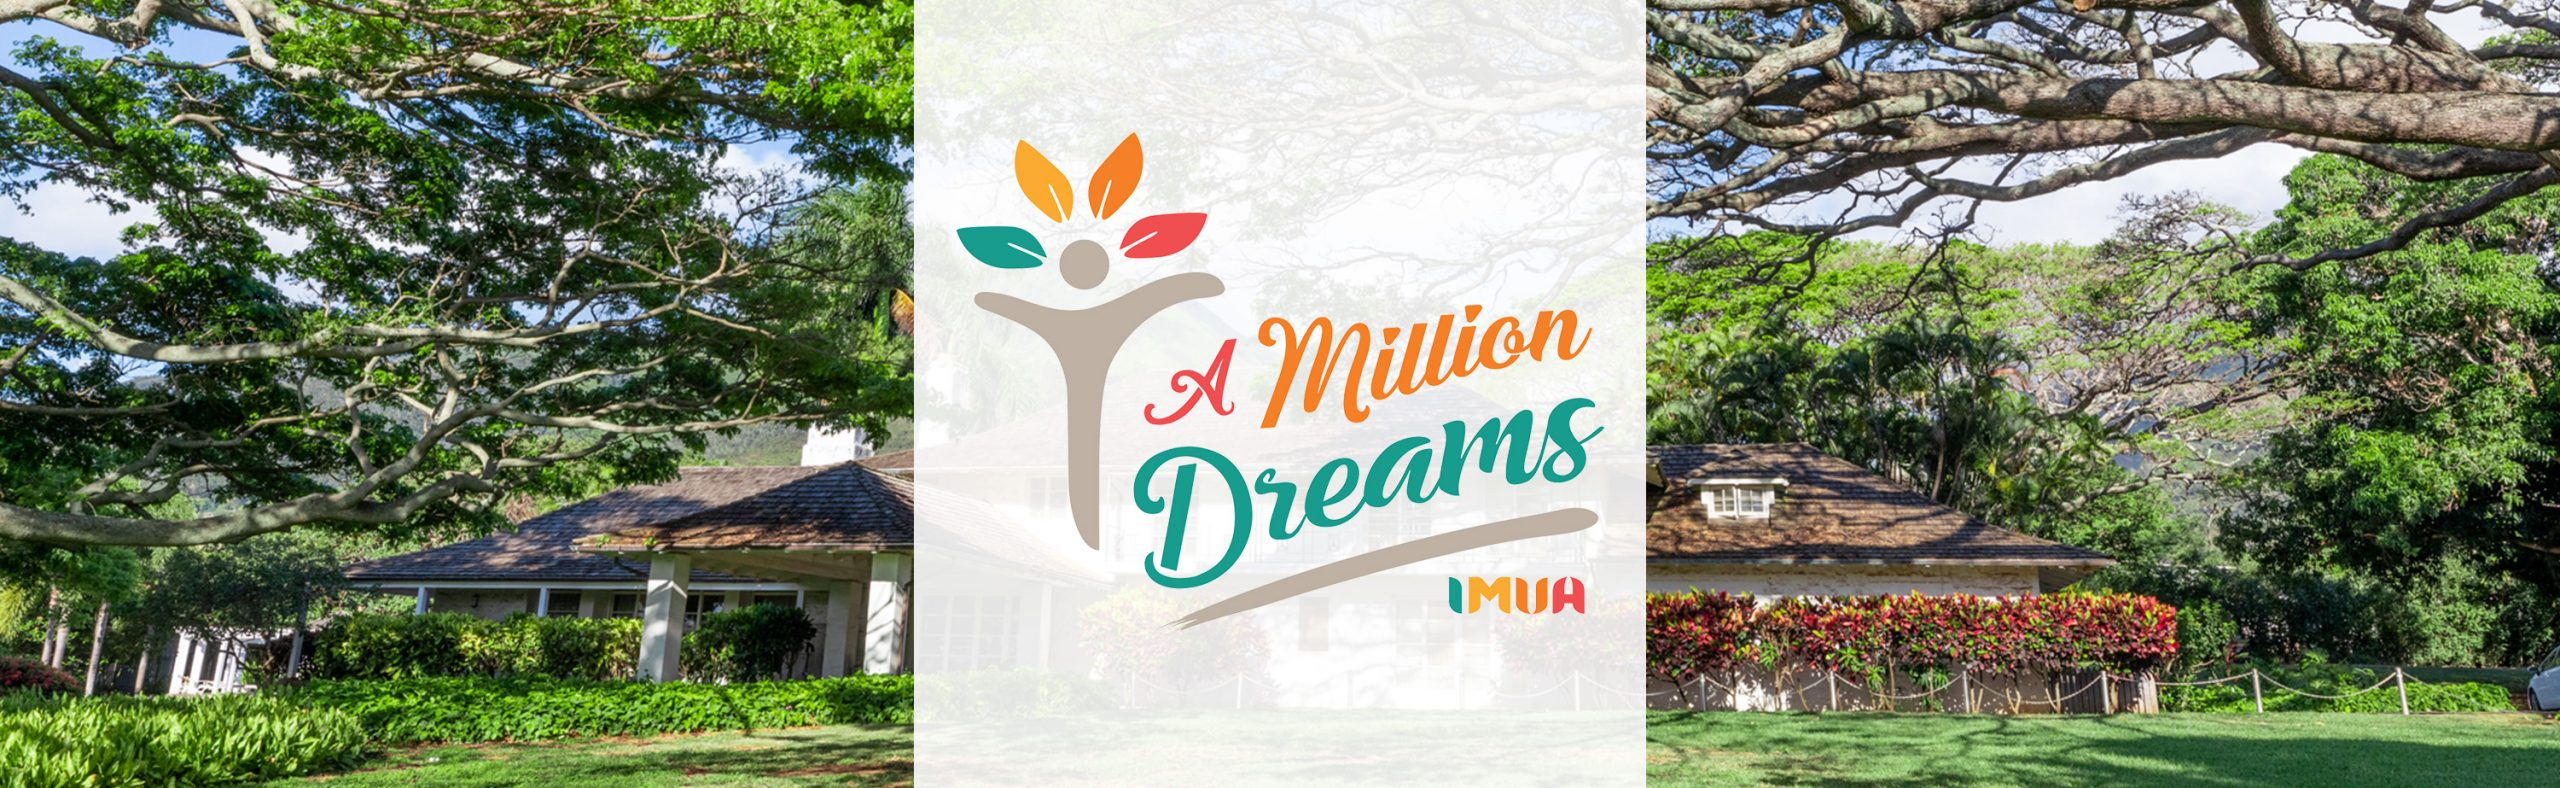 a-million-dreams-imua-discovery-garden-01